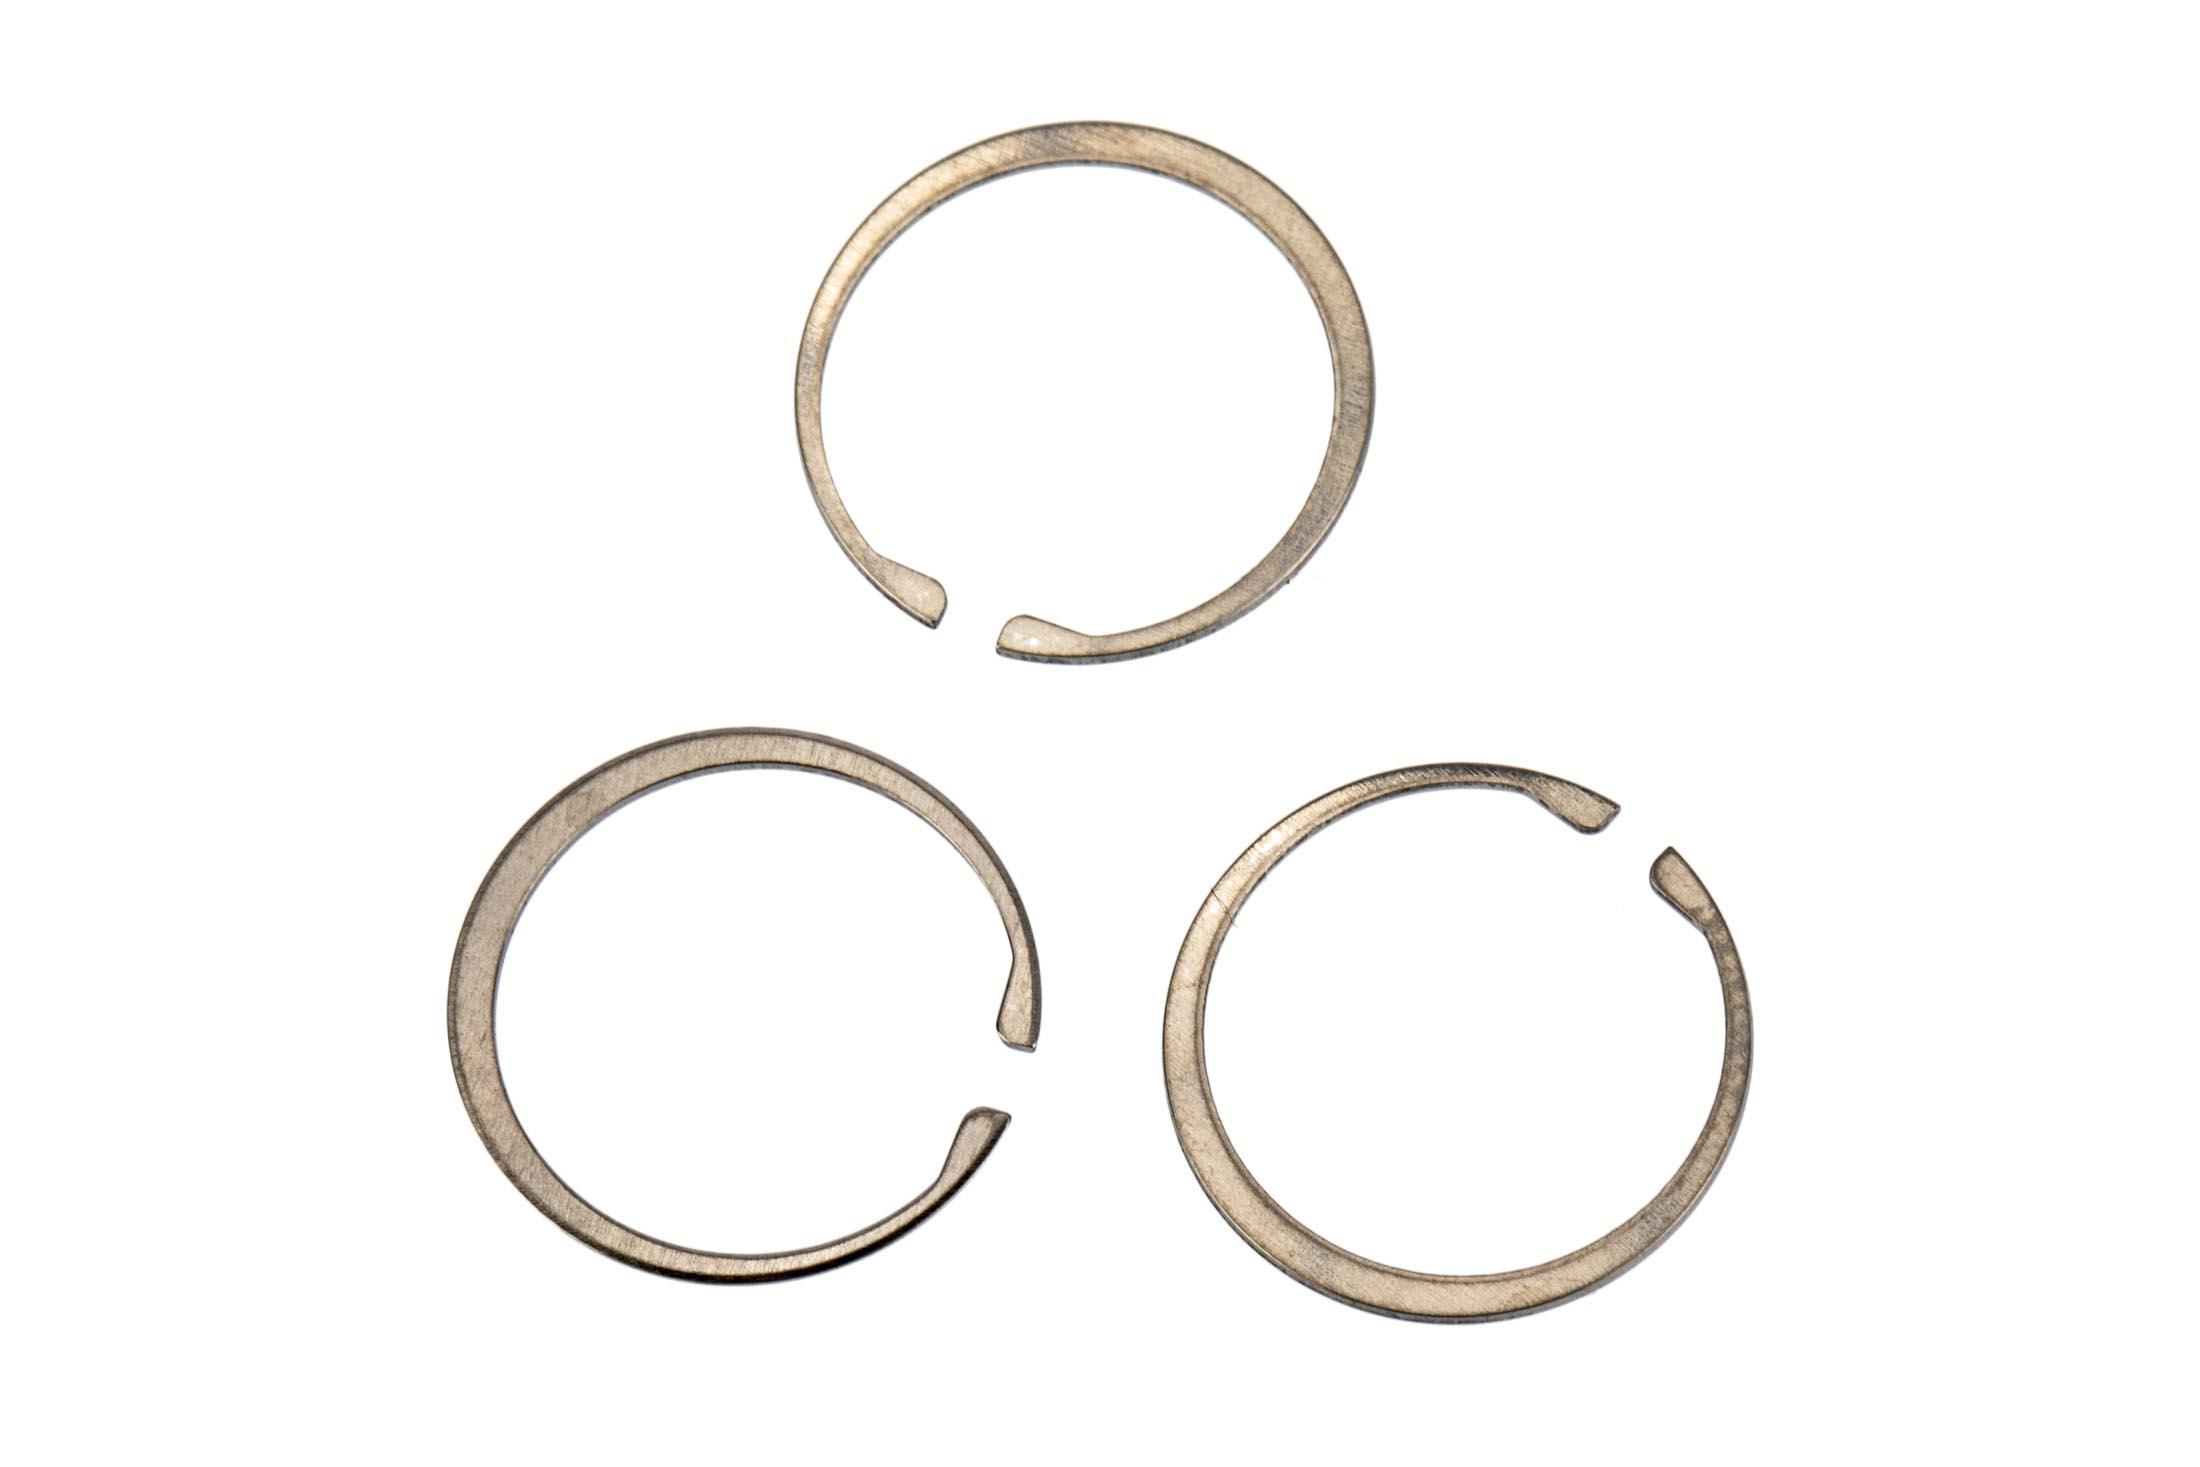 Sprinco 3-pack of gas rings is a MIL 848511 gas rings for the AR-15, M4, or M16.